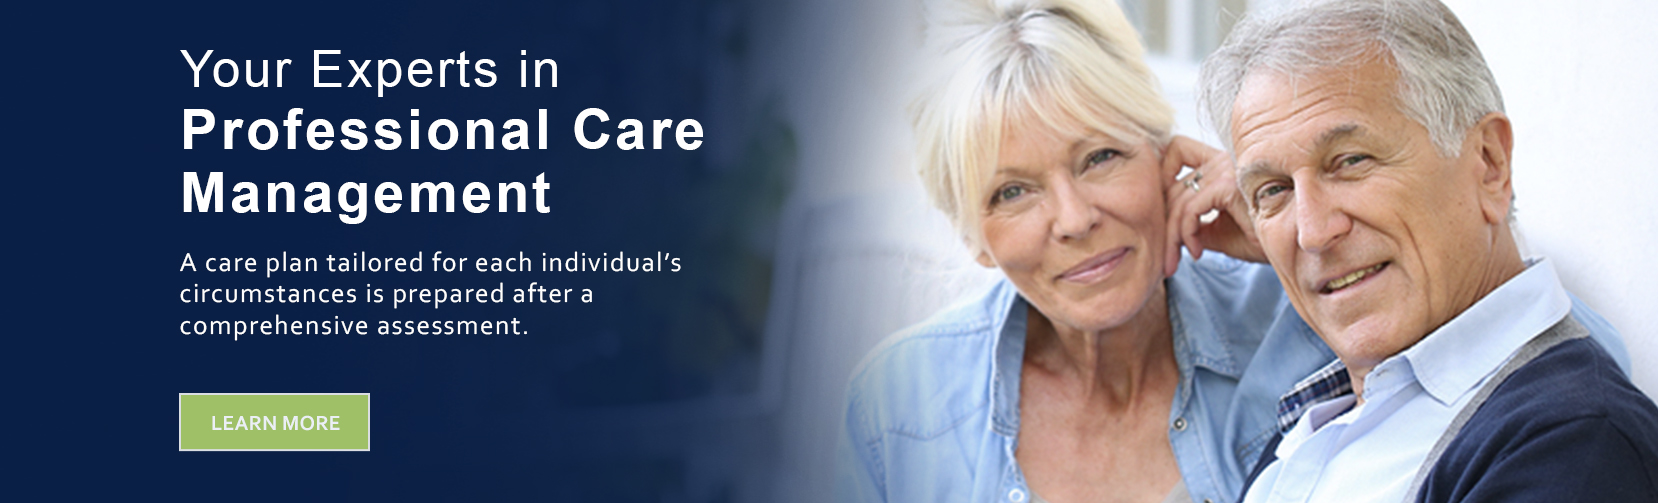 Your Experts in Professional Care